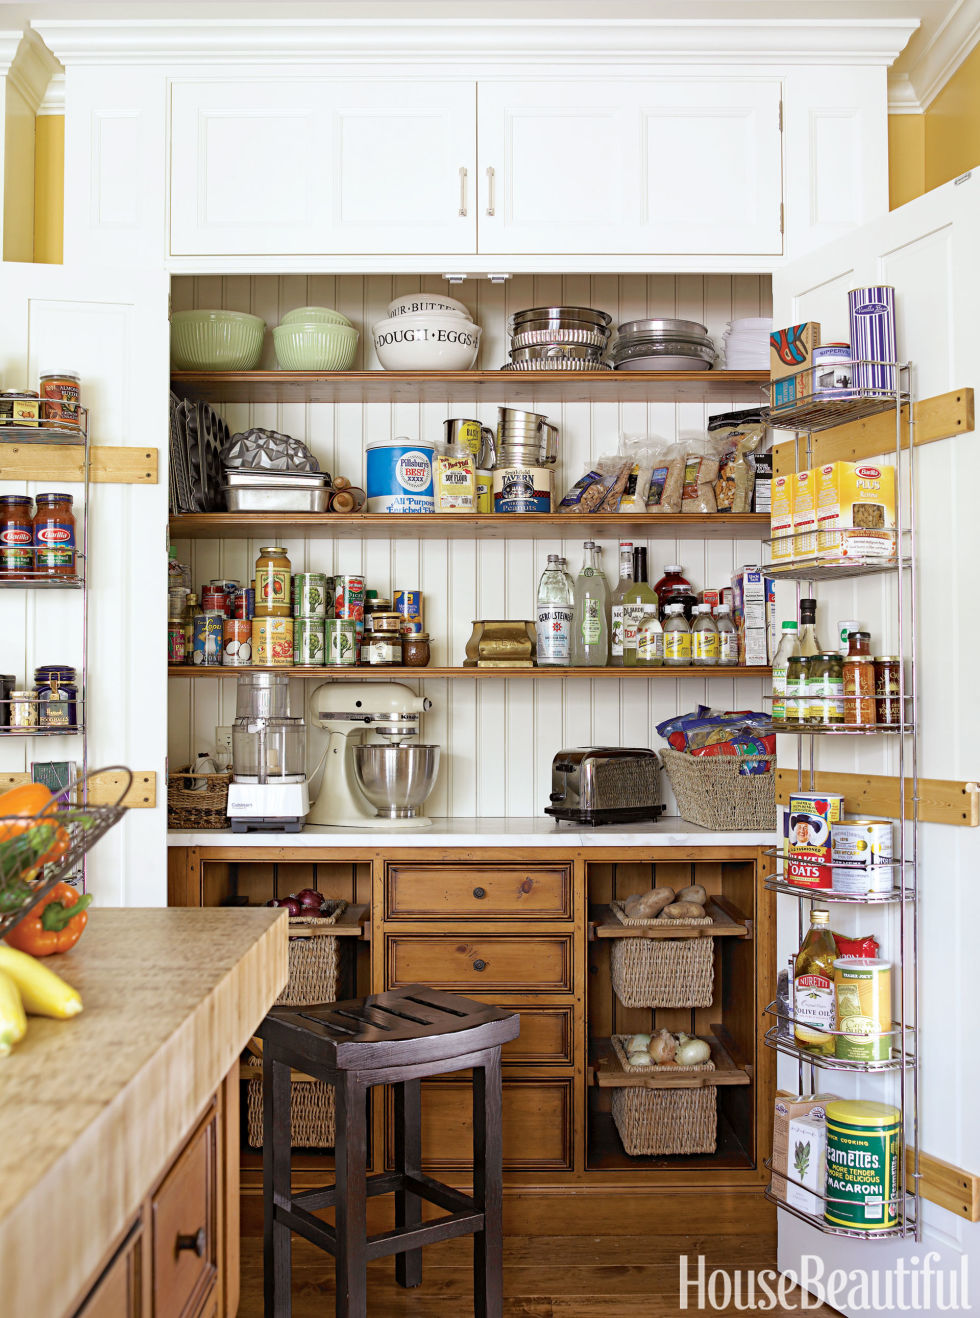 For Kitchen Storage In Small Kitchen 20 Unique Kitchen Storage Ideas Easy Storage Solutions For Kitchens